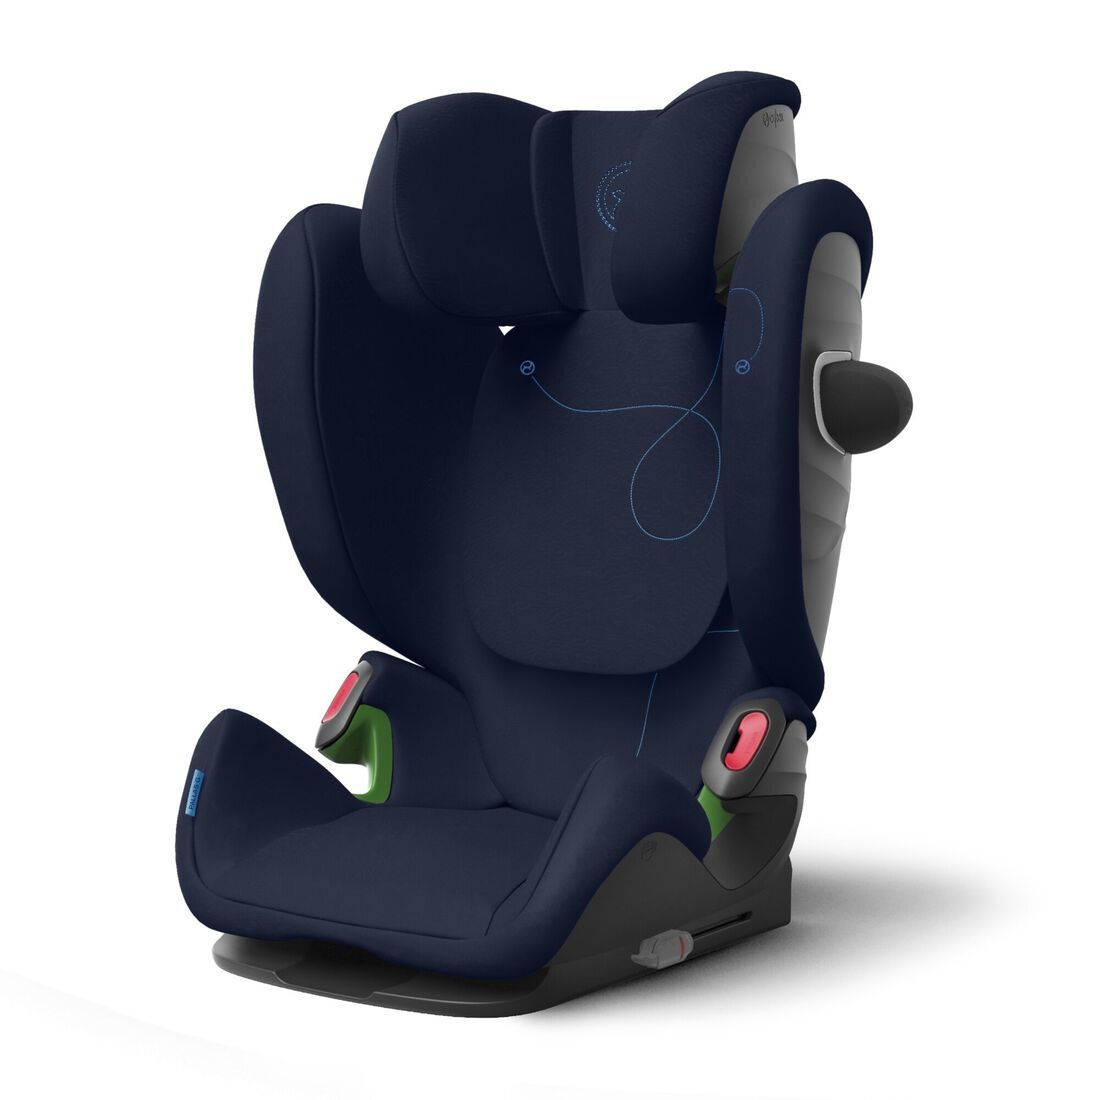 CYBEX Pallas G i-Size - Navy Blue in Navy Blue large image number 7